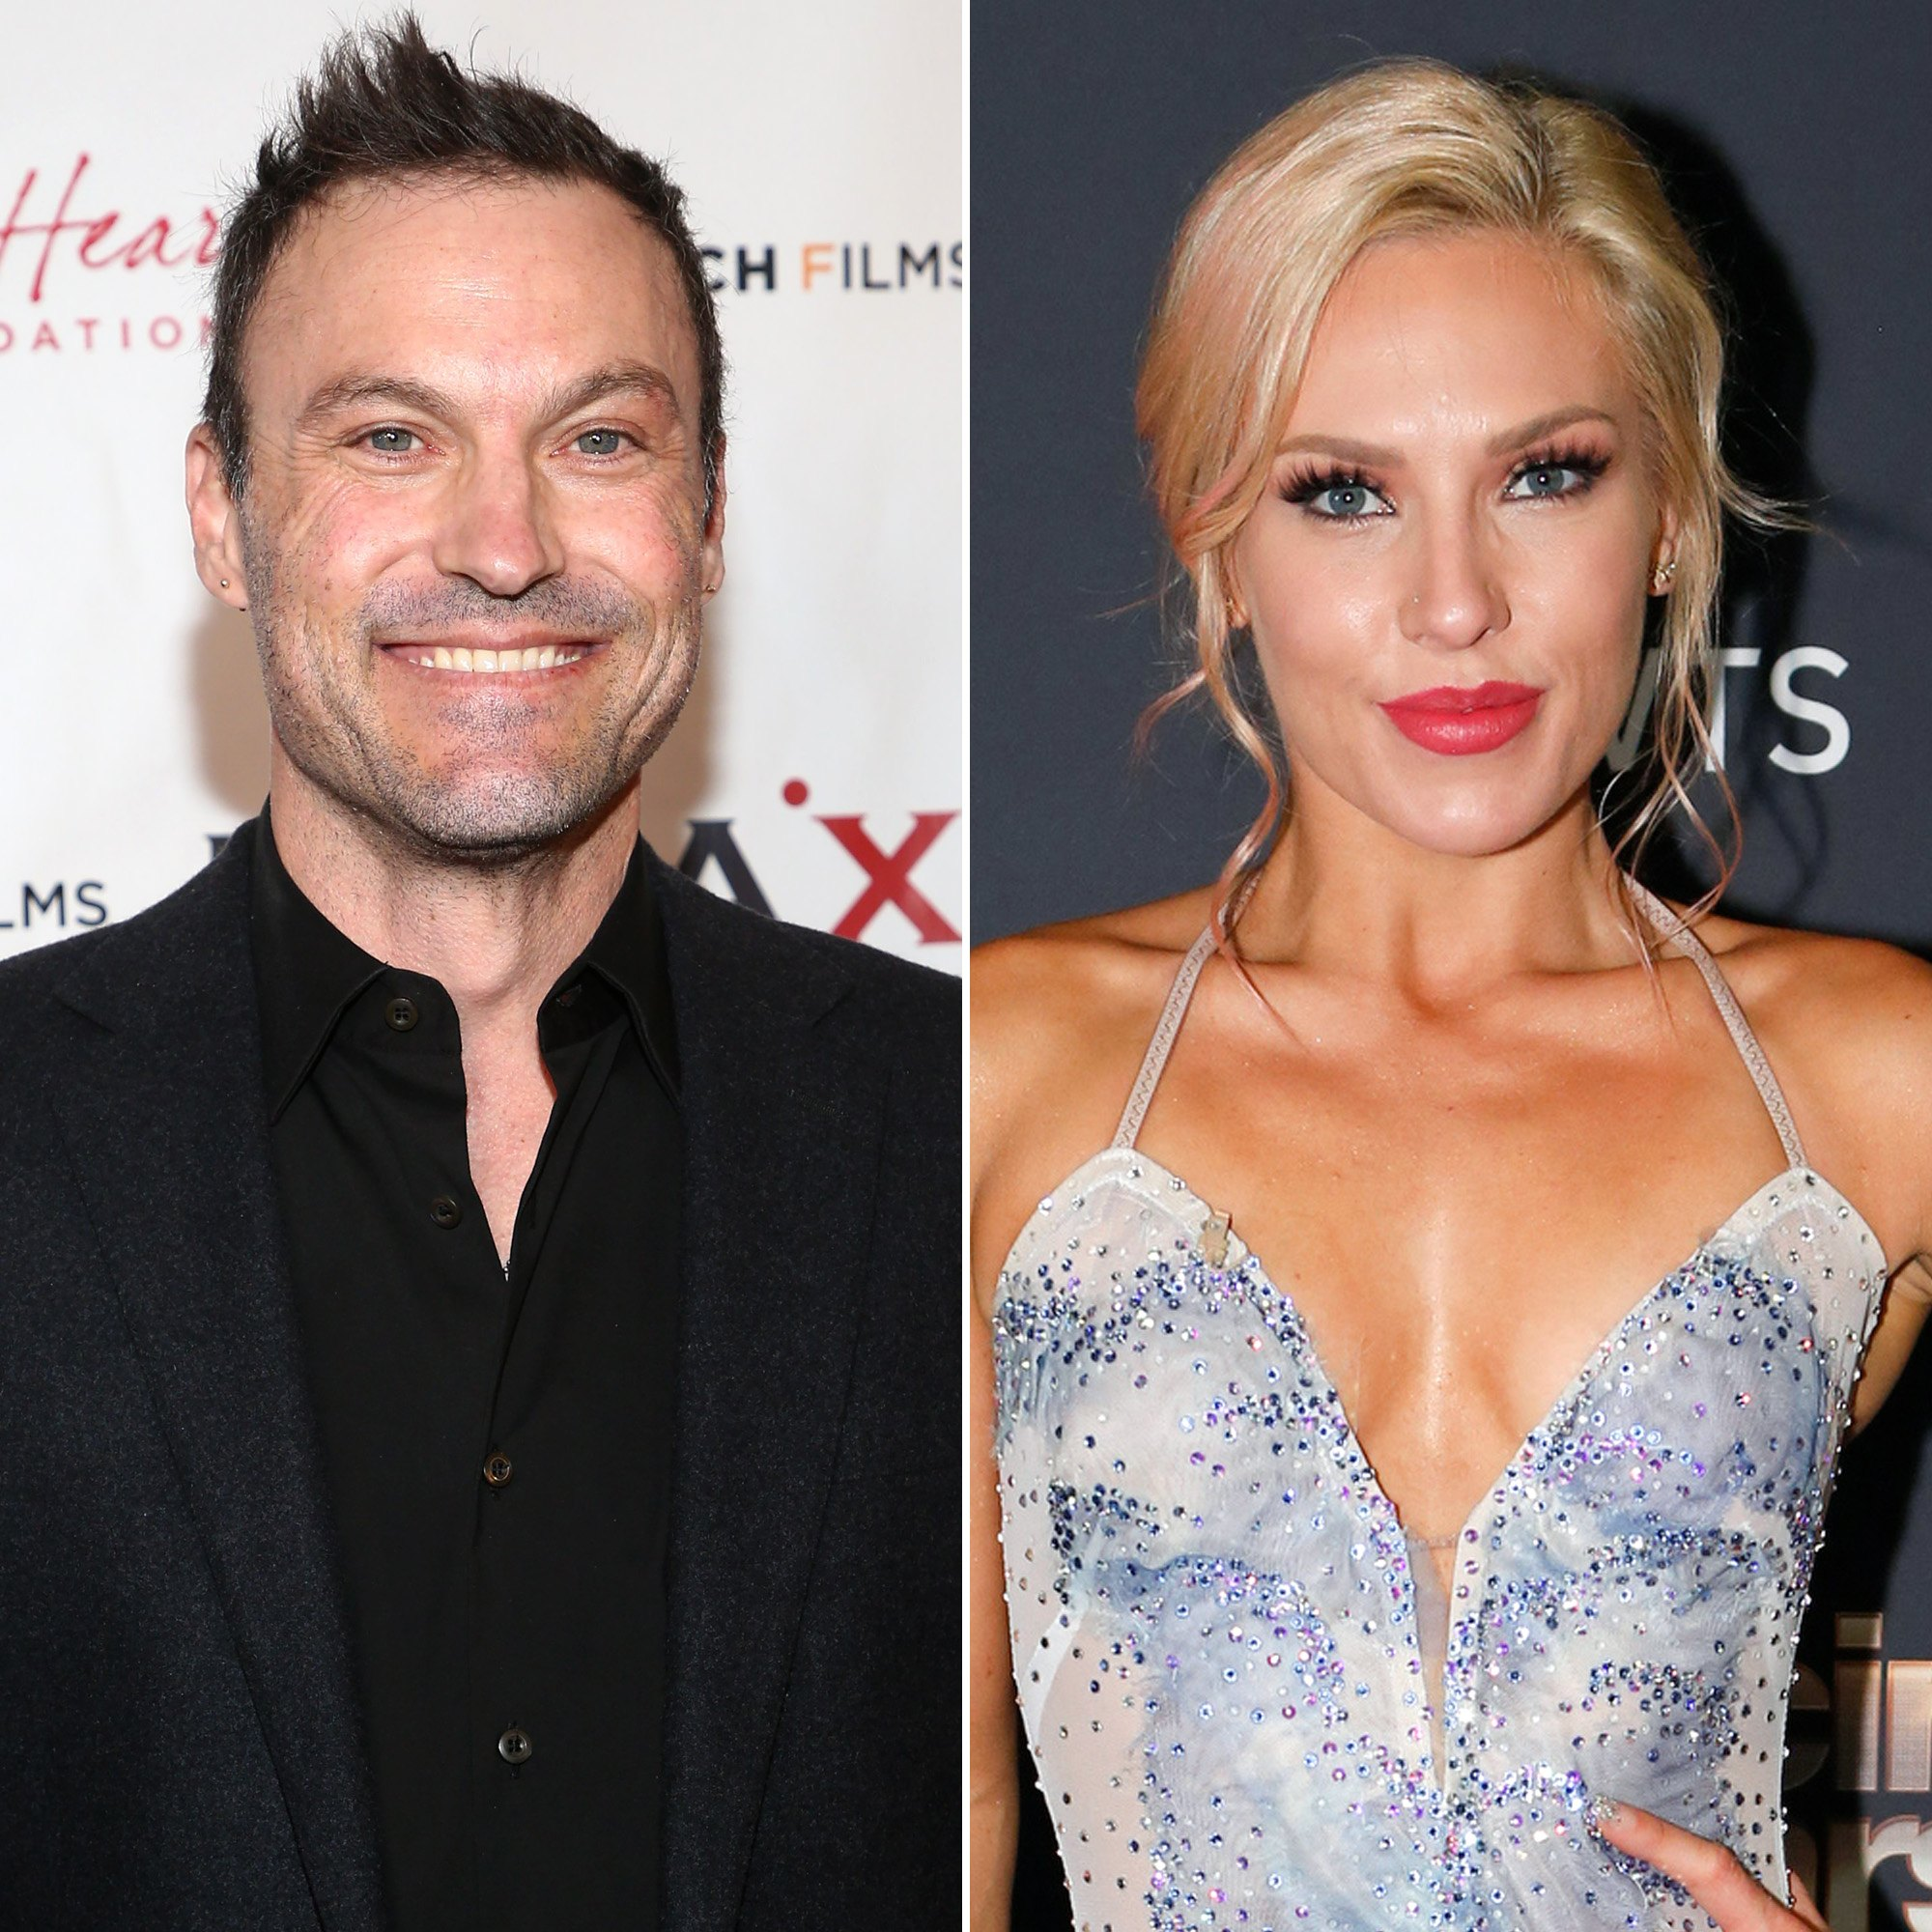 Megan Fox and Brian Austin Green race to the altar with their new partners.